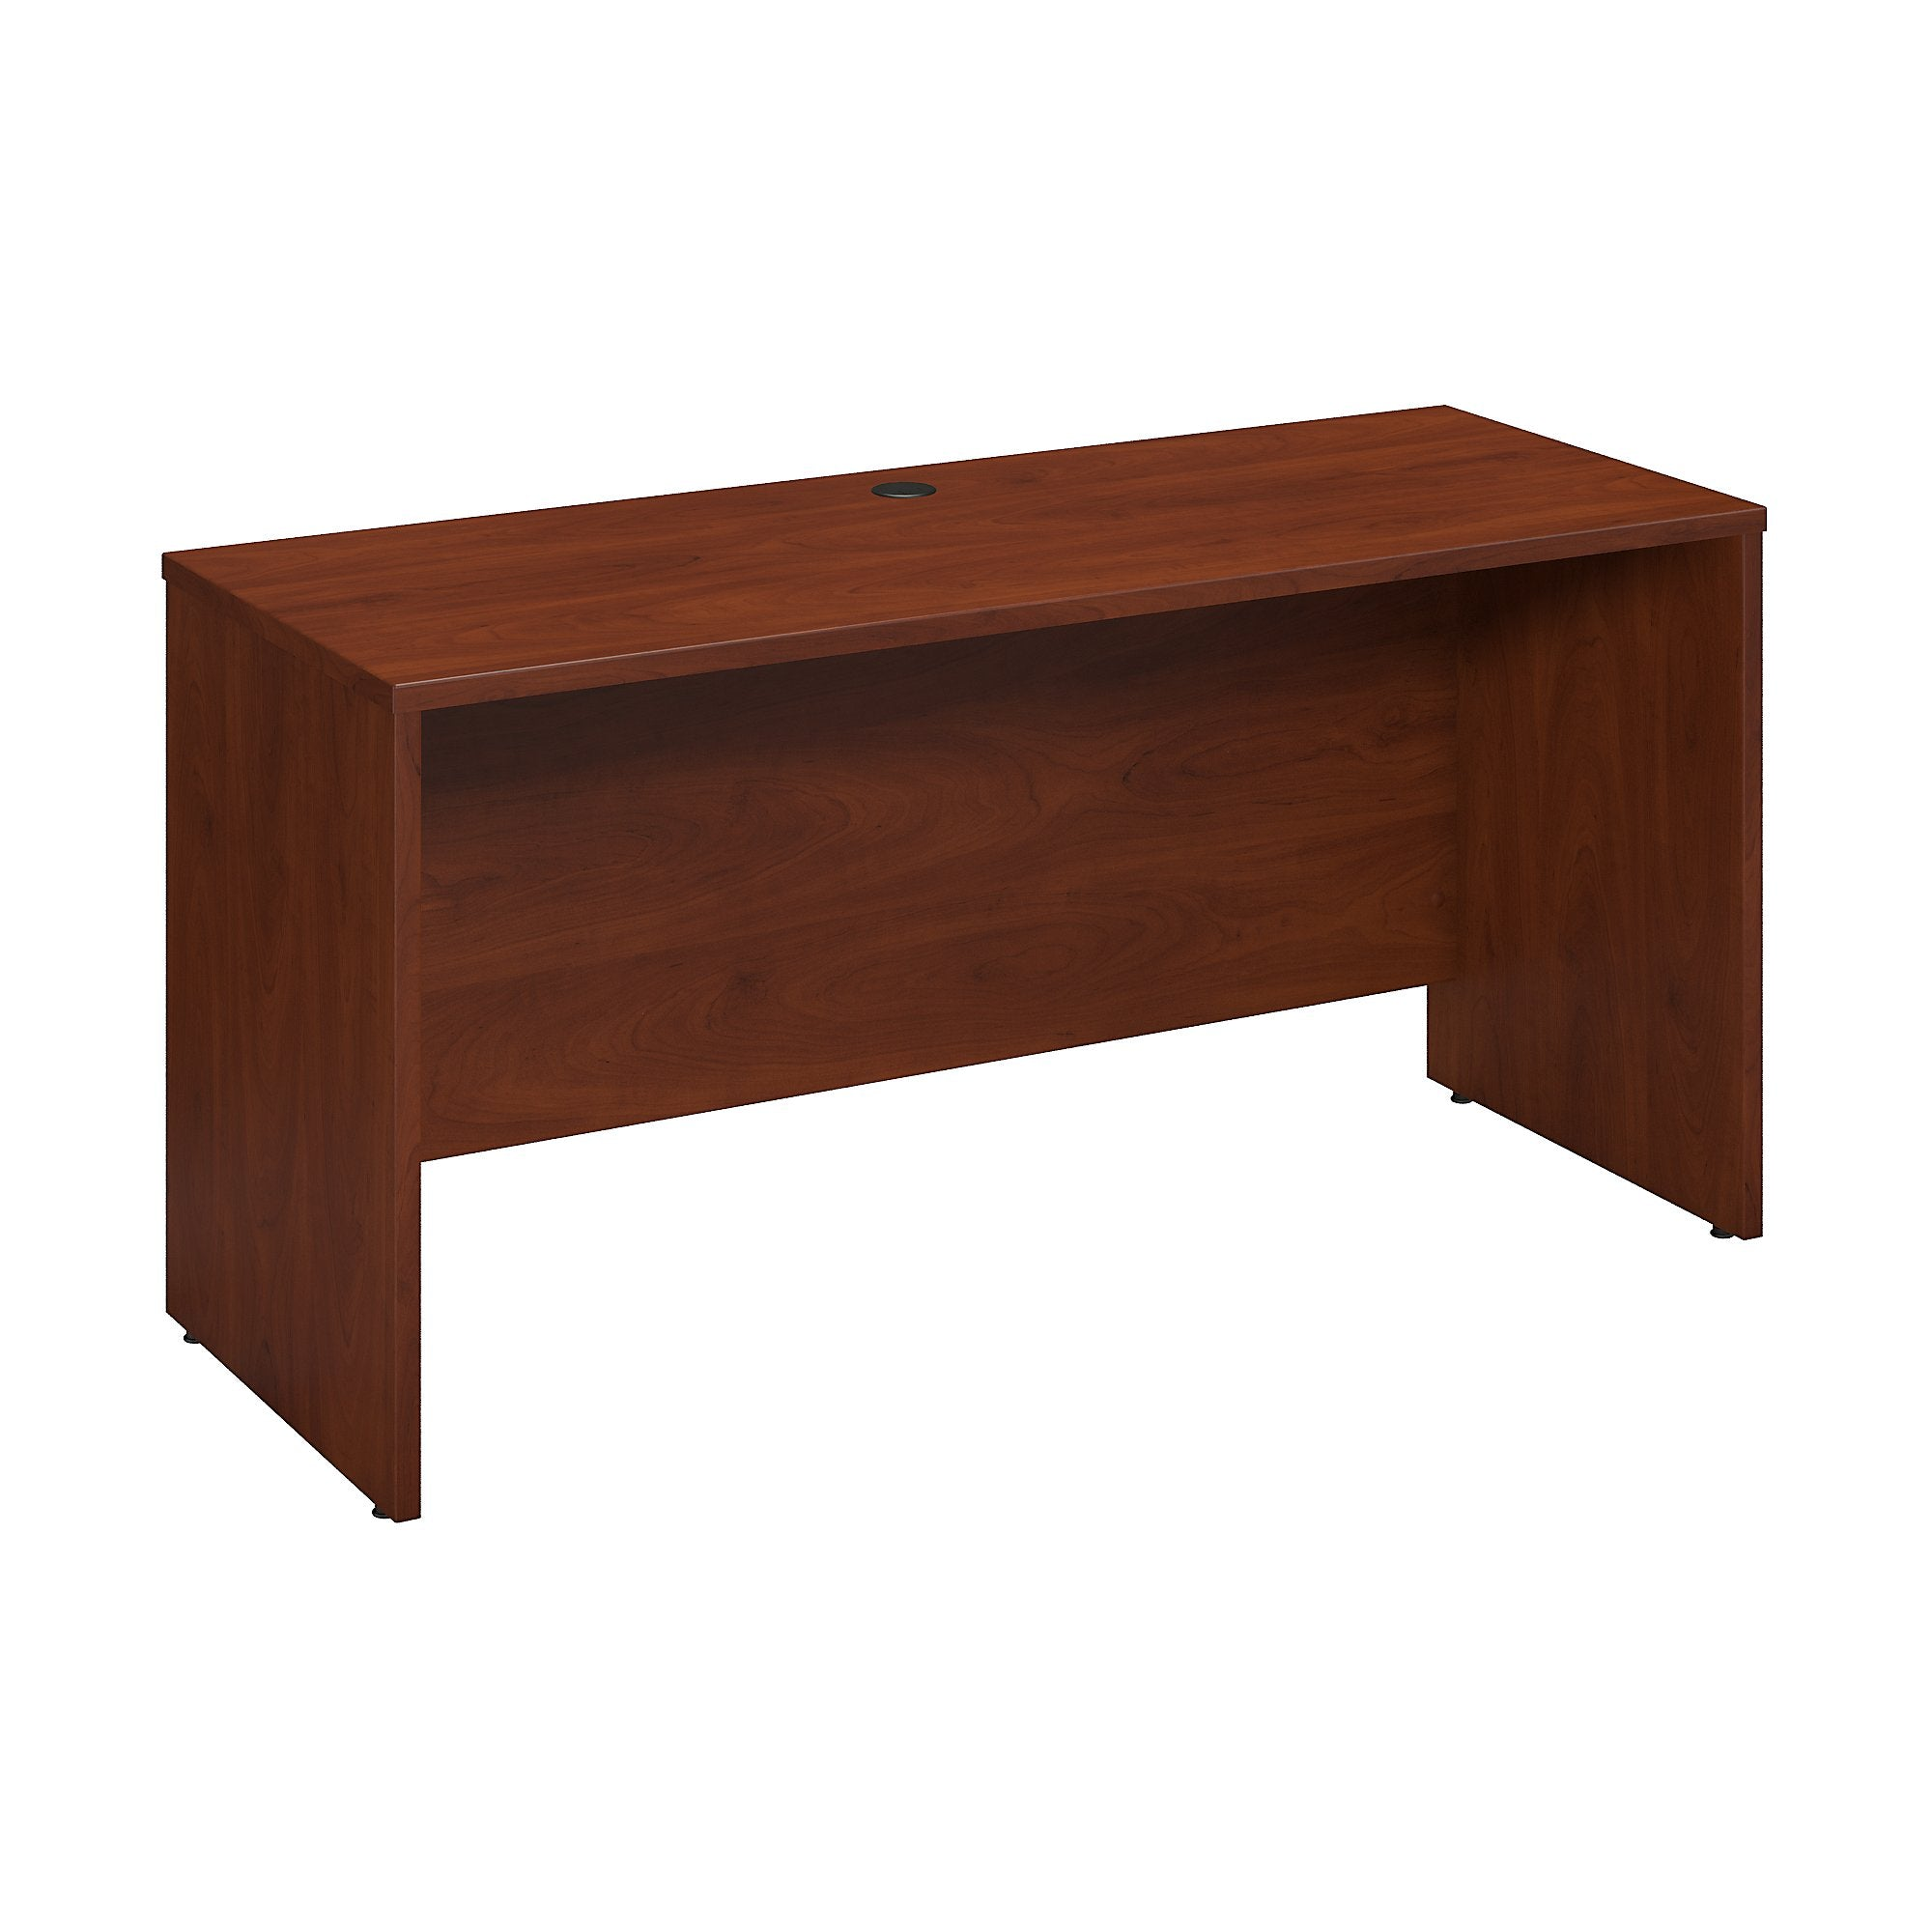 Bush Business Furniture Hansen Cherry Series C Elite 60W x 24D Desk/Credenza/Return